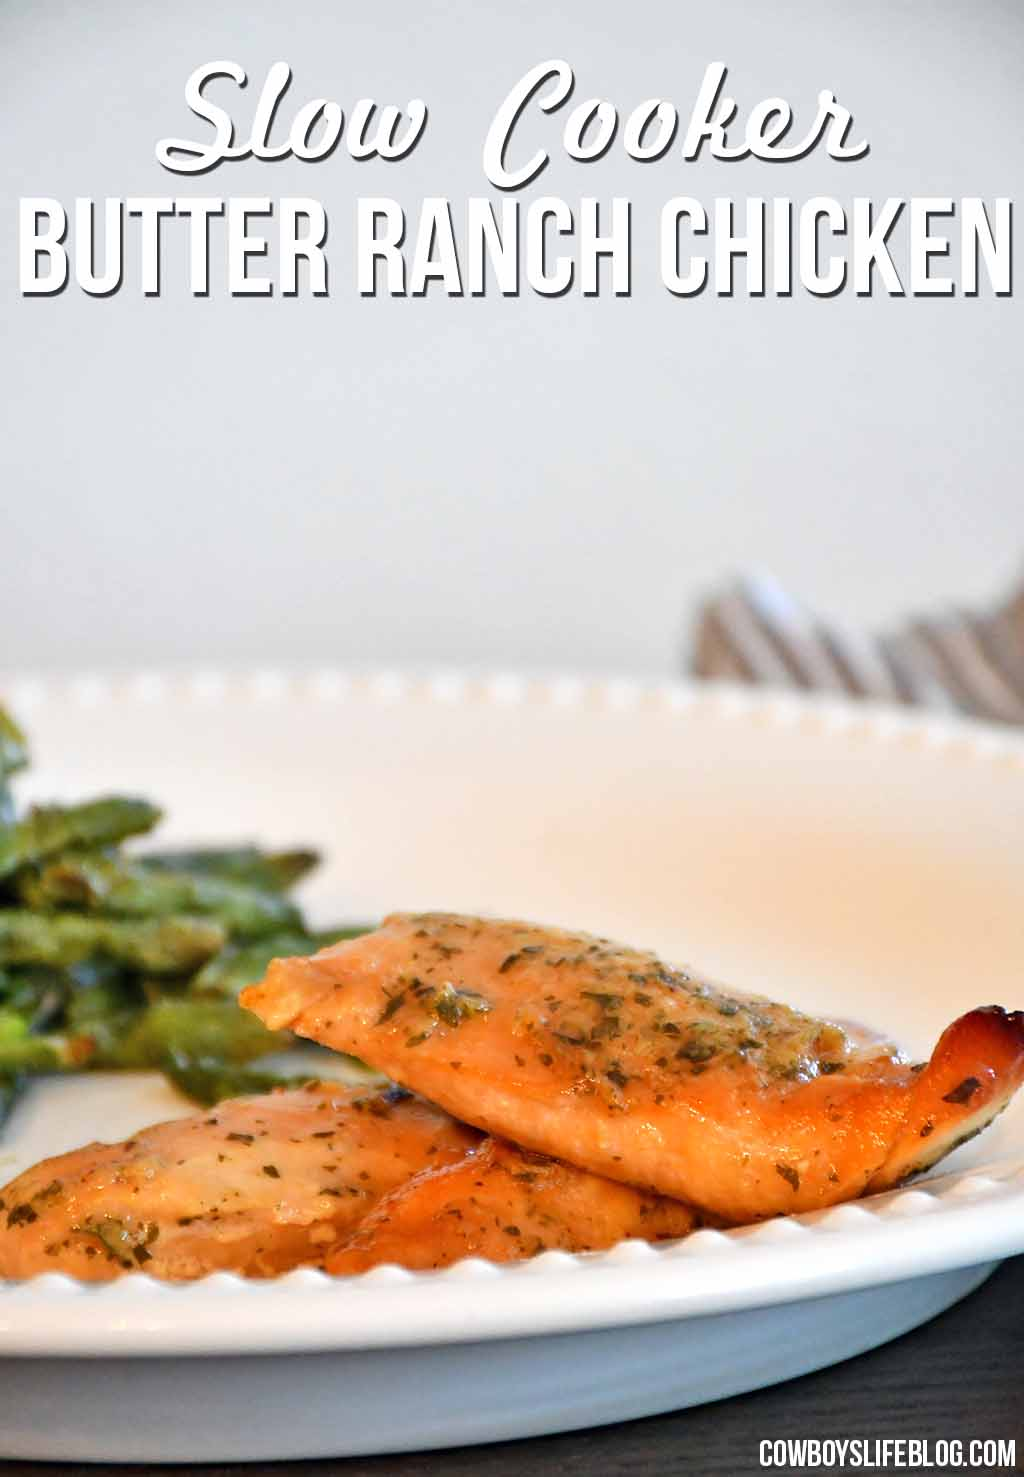 How to make slow cooker butter ranch chicken